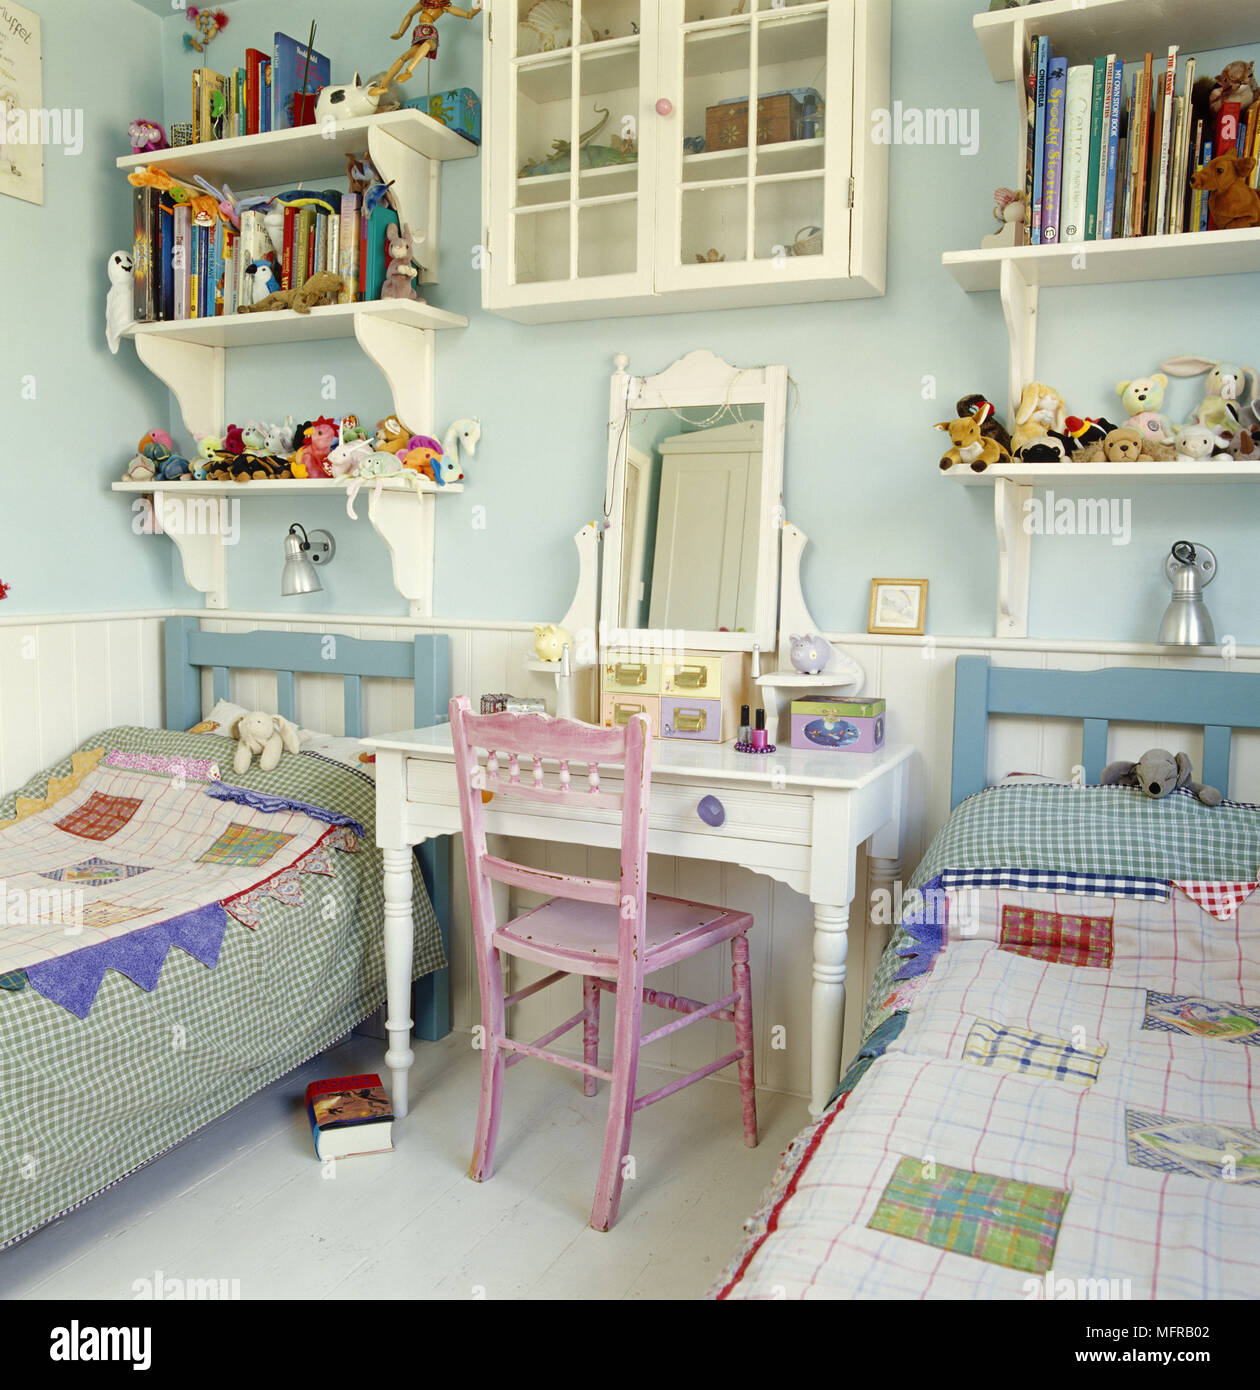 Pair Of Single Beds In Childrens Room Stock Photo Alamy